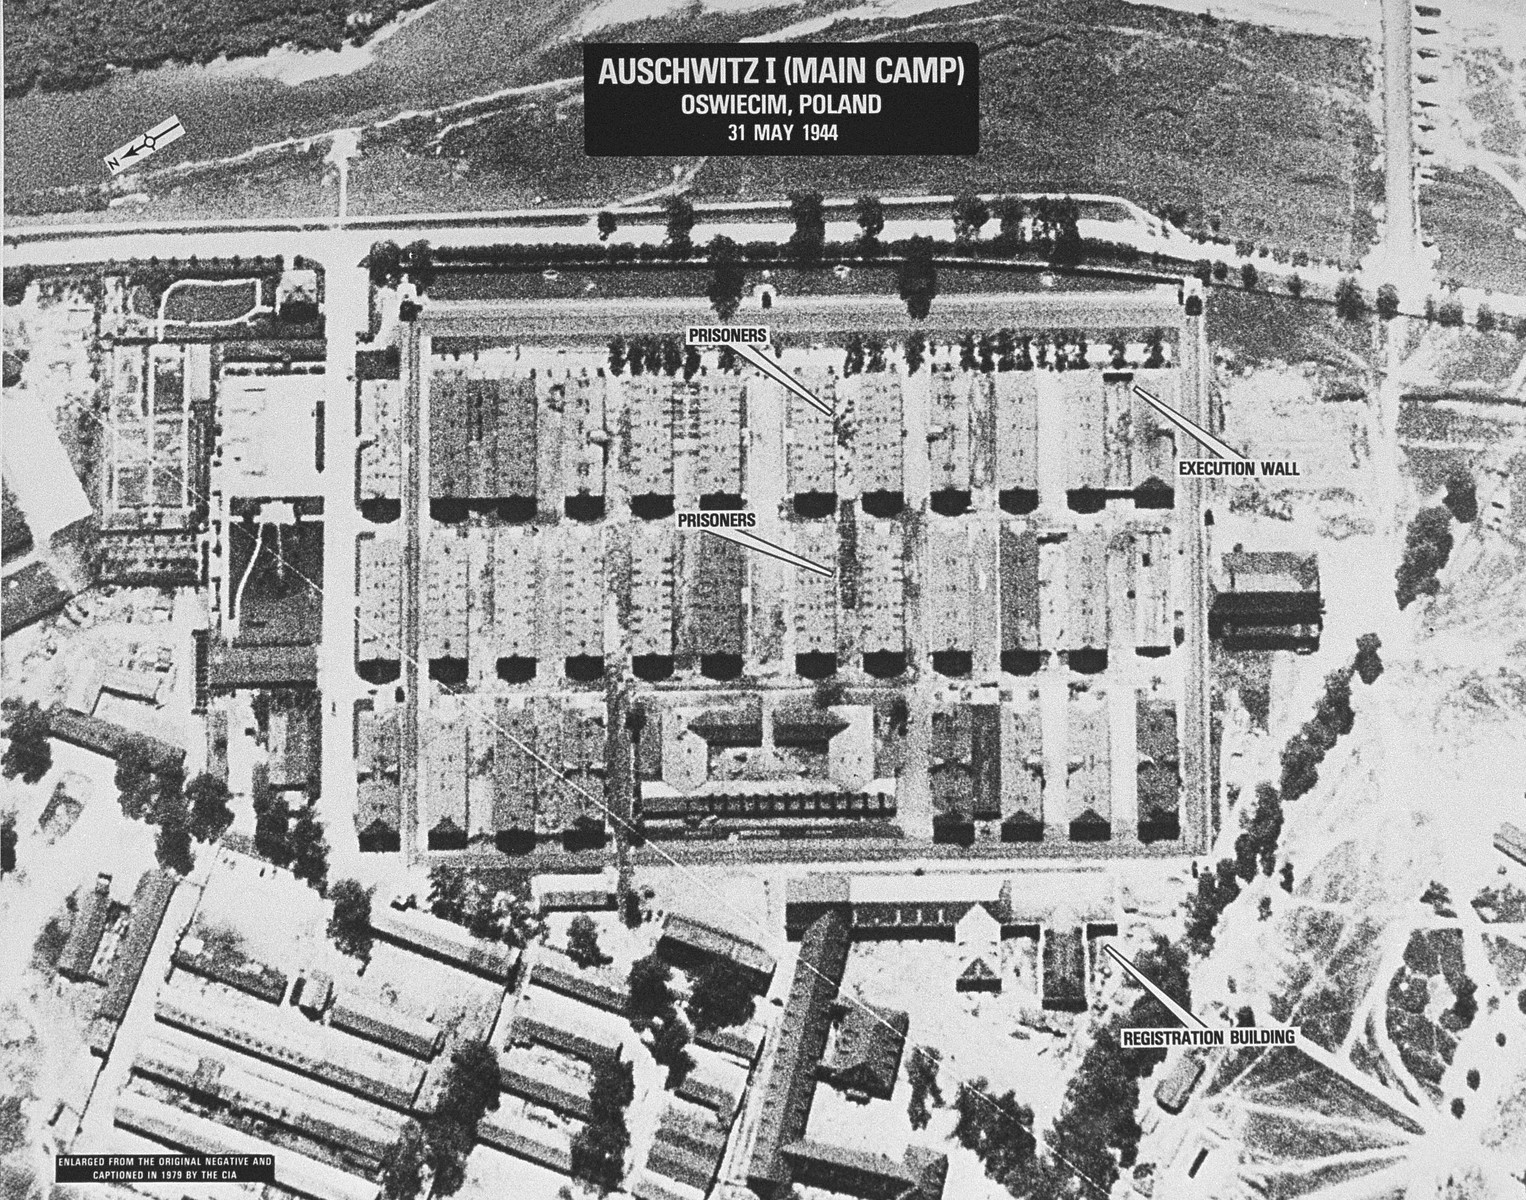 An aerial reconnaissance photograph of the Auschwitz concentration camp showing Auschwitz I.